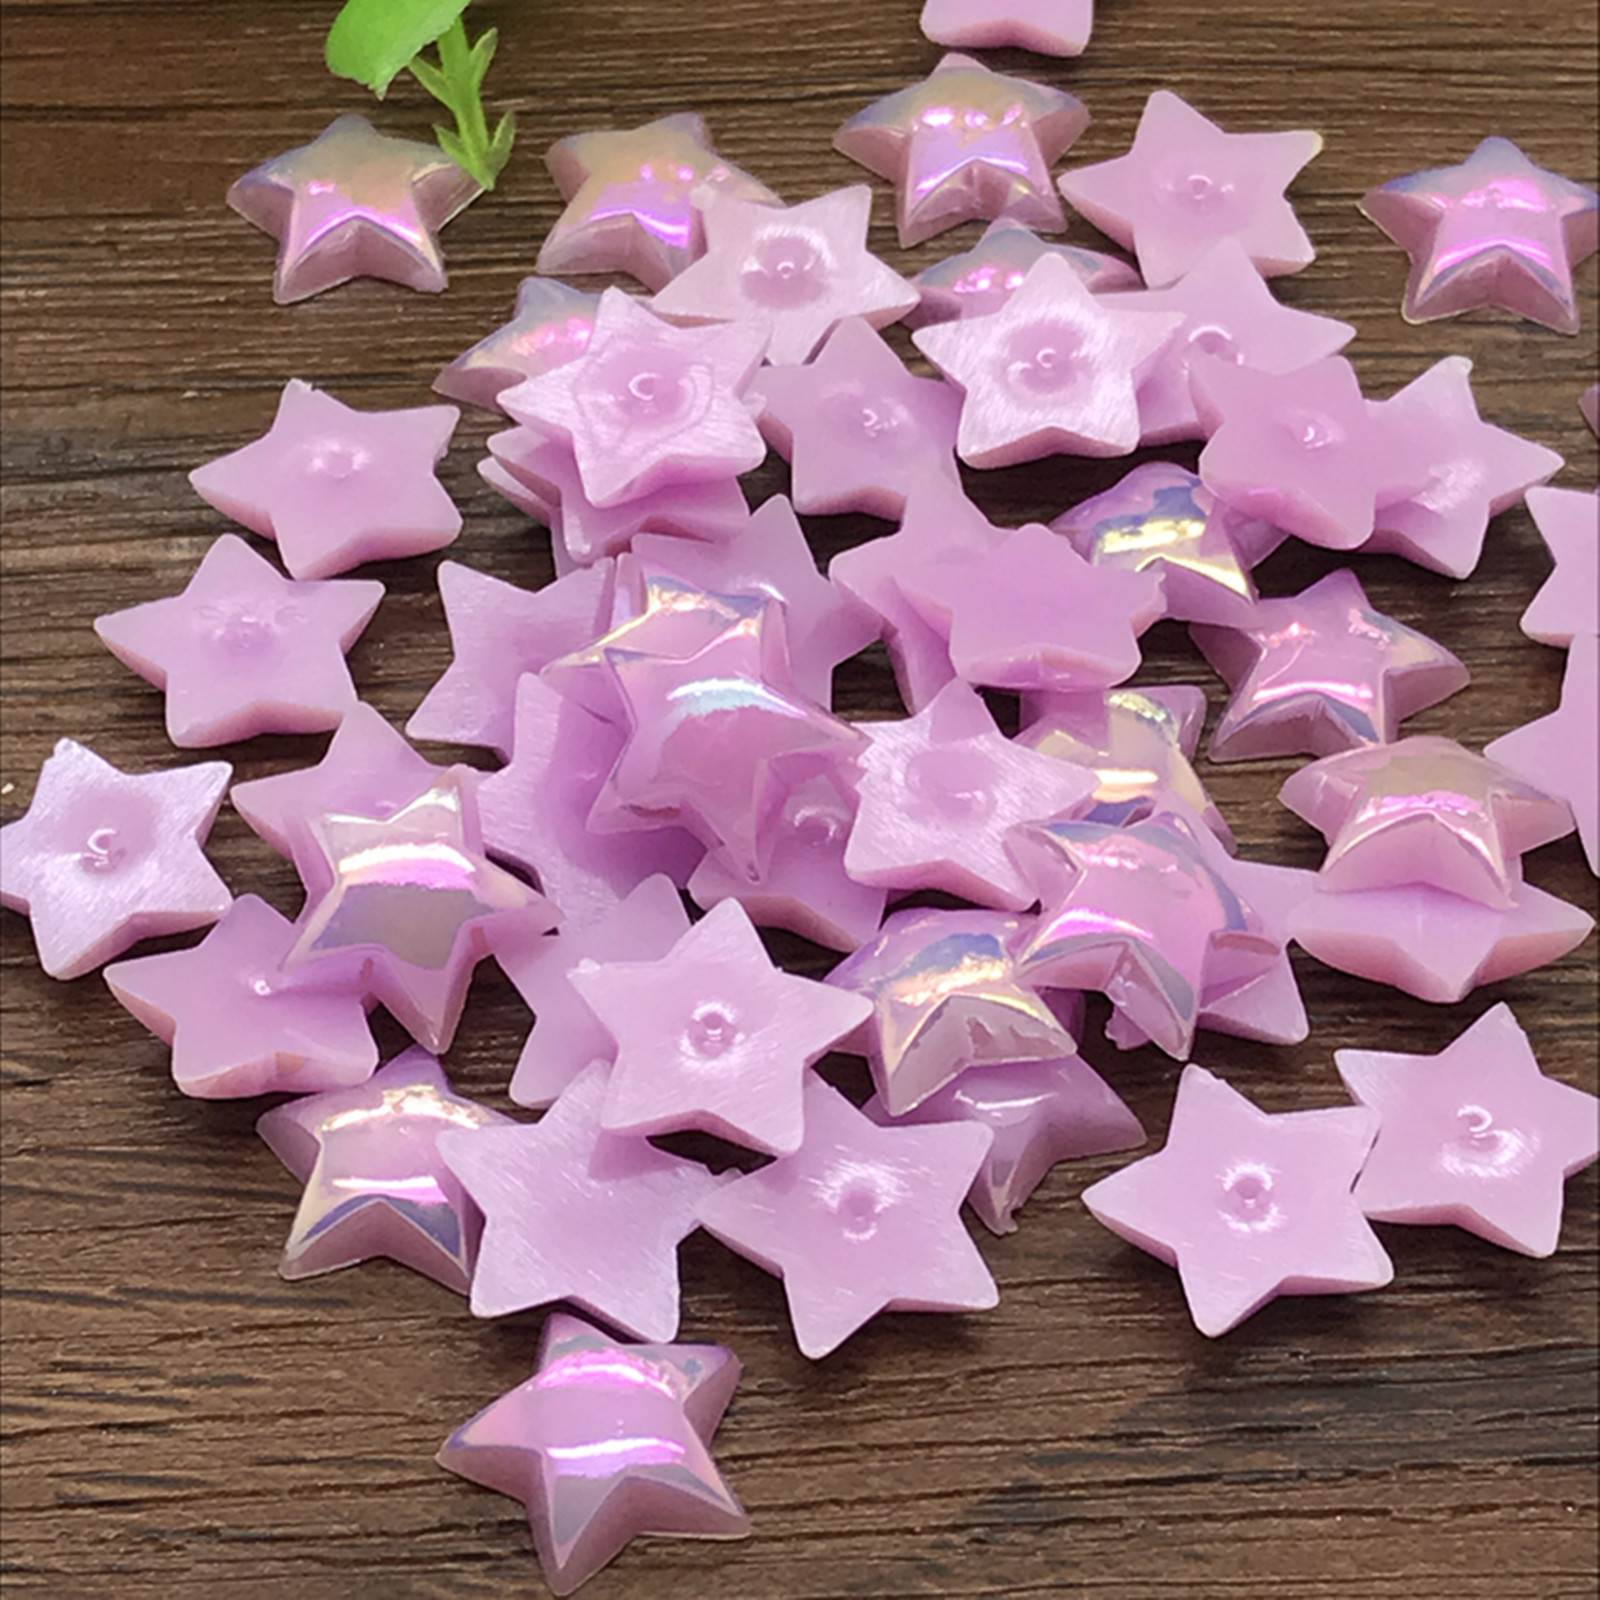 NEW 6mm 200pcs smooth Resin Star Flat back Scrapbooking beads Craft Light blue